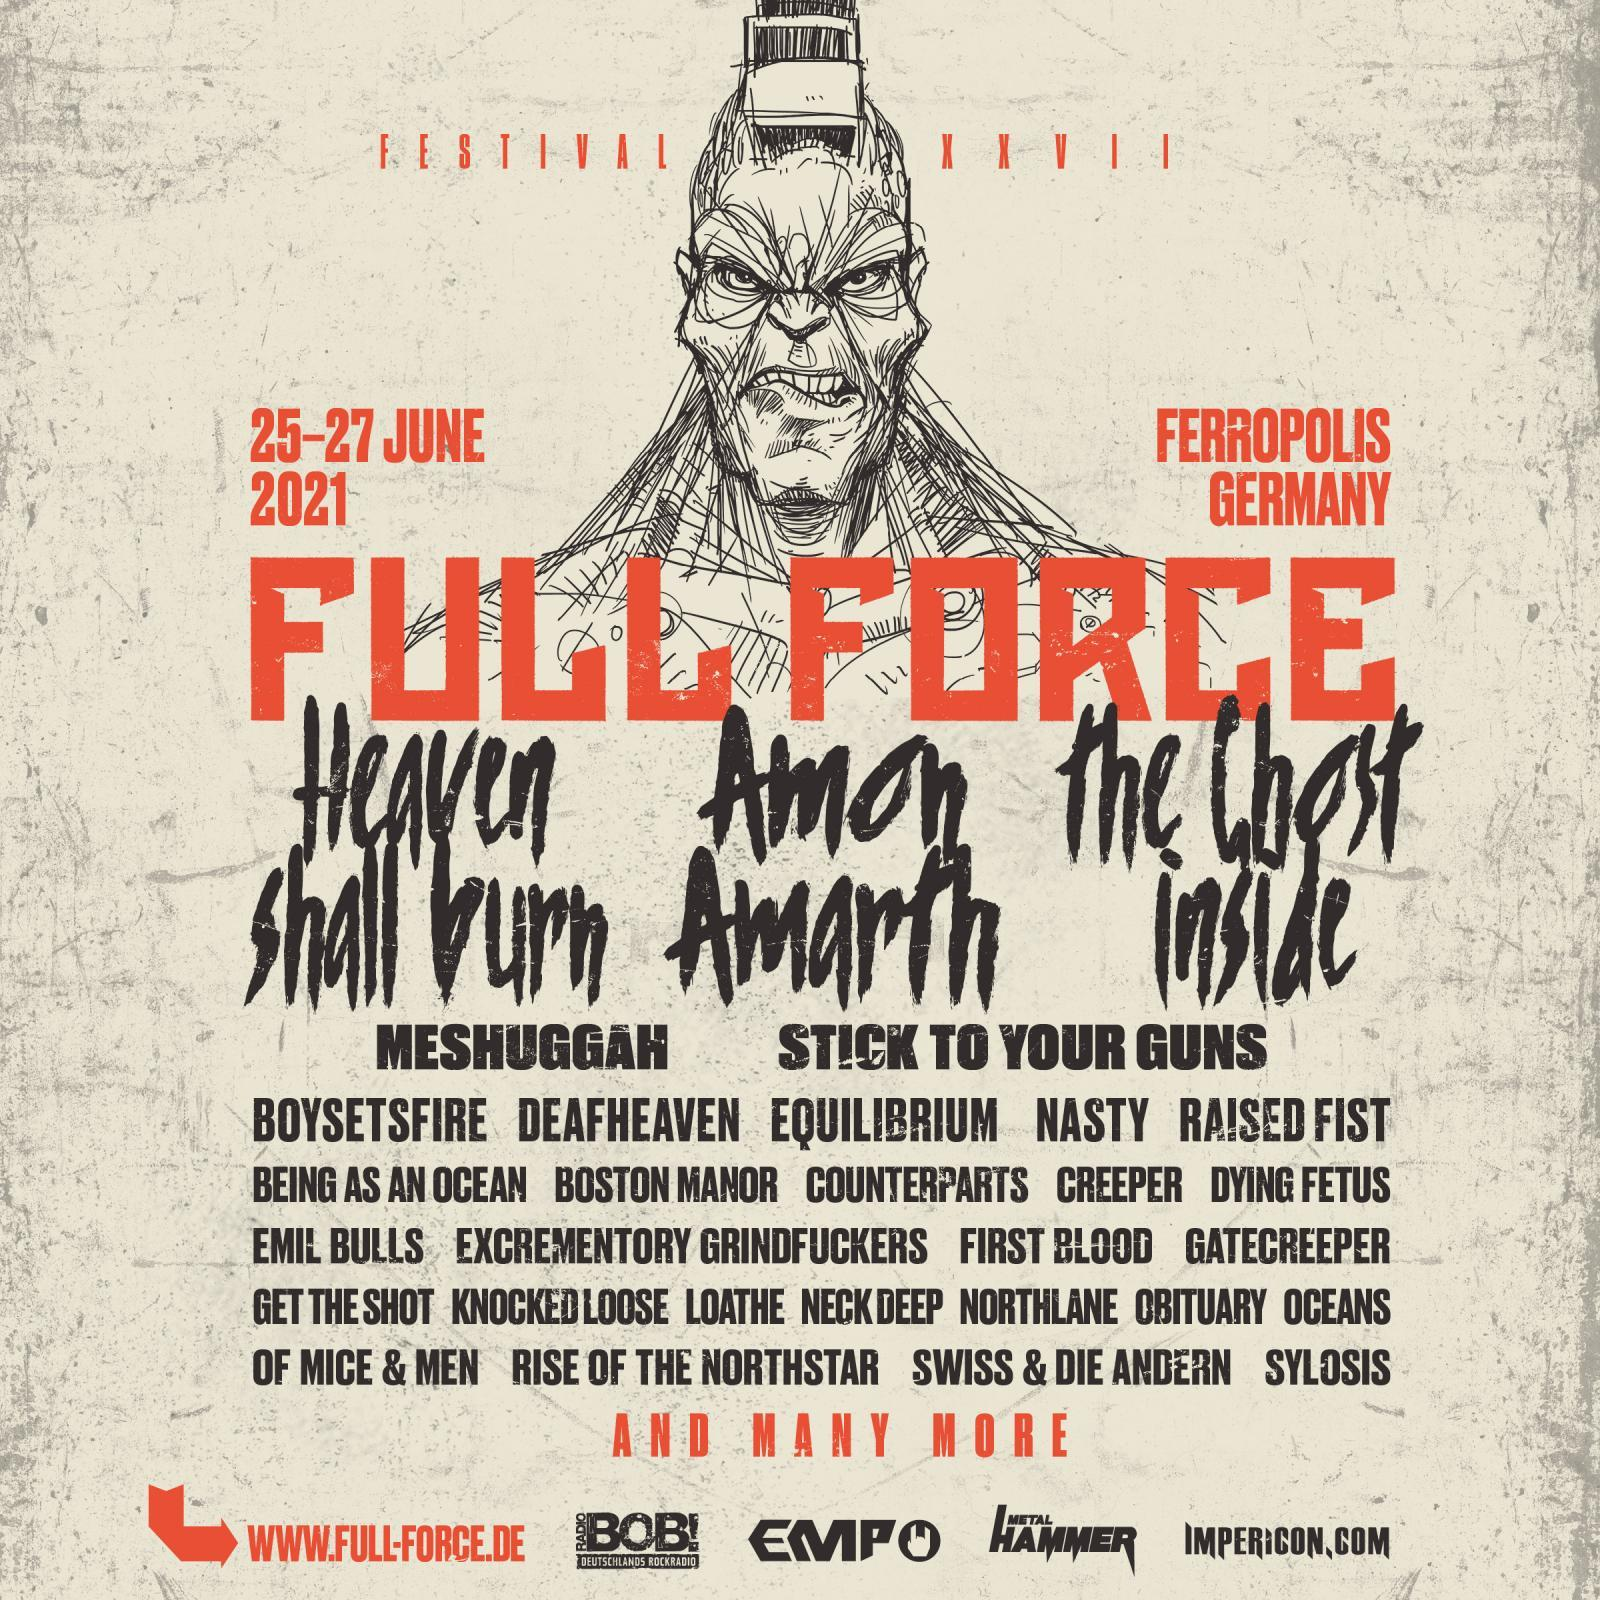 Full Force Festival Corona Coronavirus 2021 2020